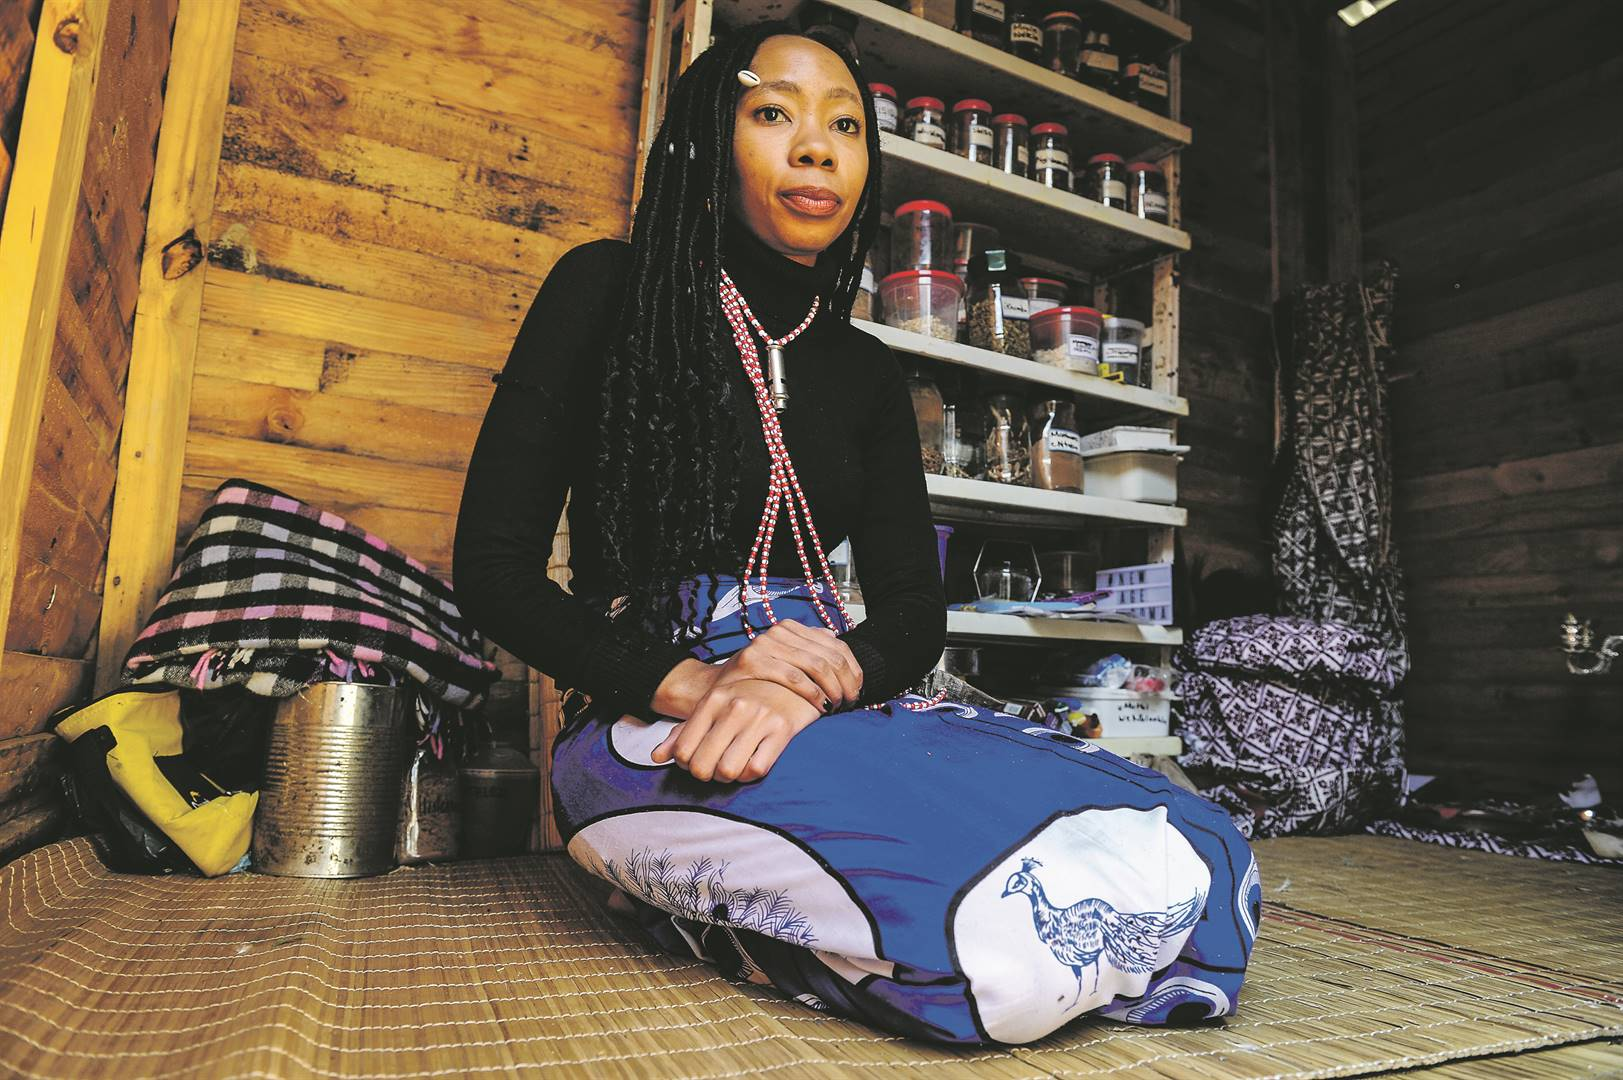 Nomfundo Dhlamini, also known as Gogo Nomakhosi, in her hut at her home in Brackendowns, south of Johannesburg. Picture: Rosetta Msimango